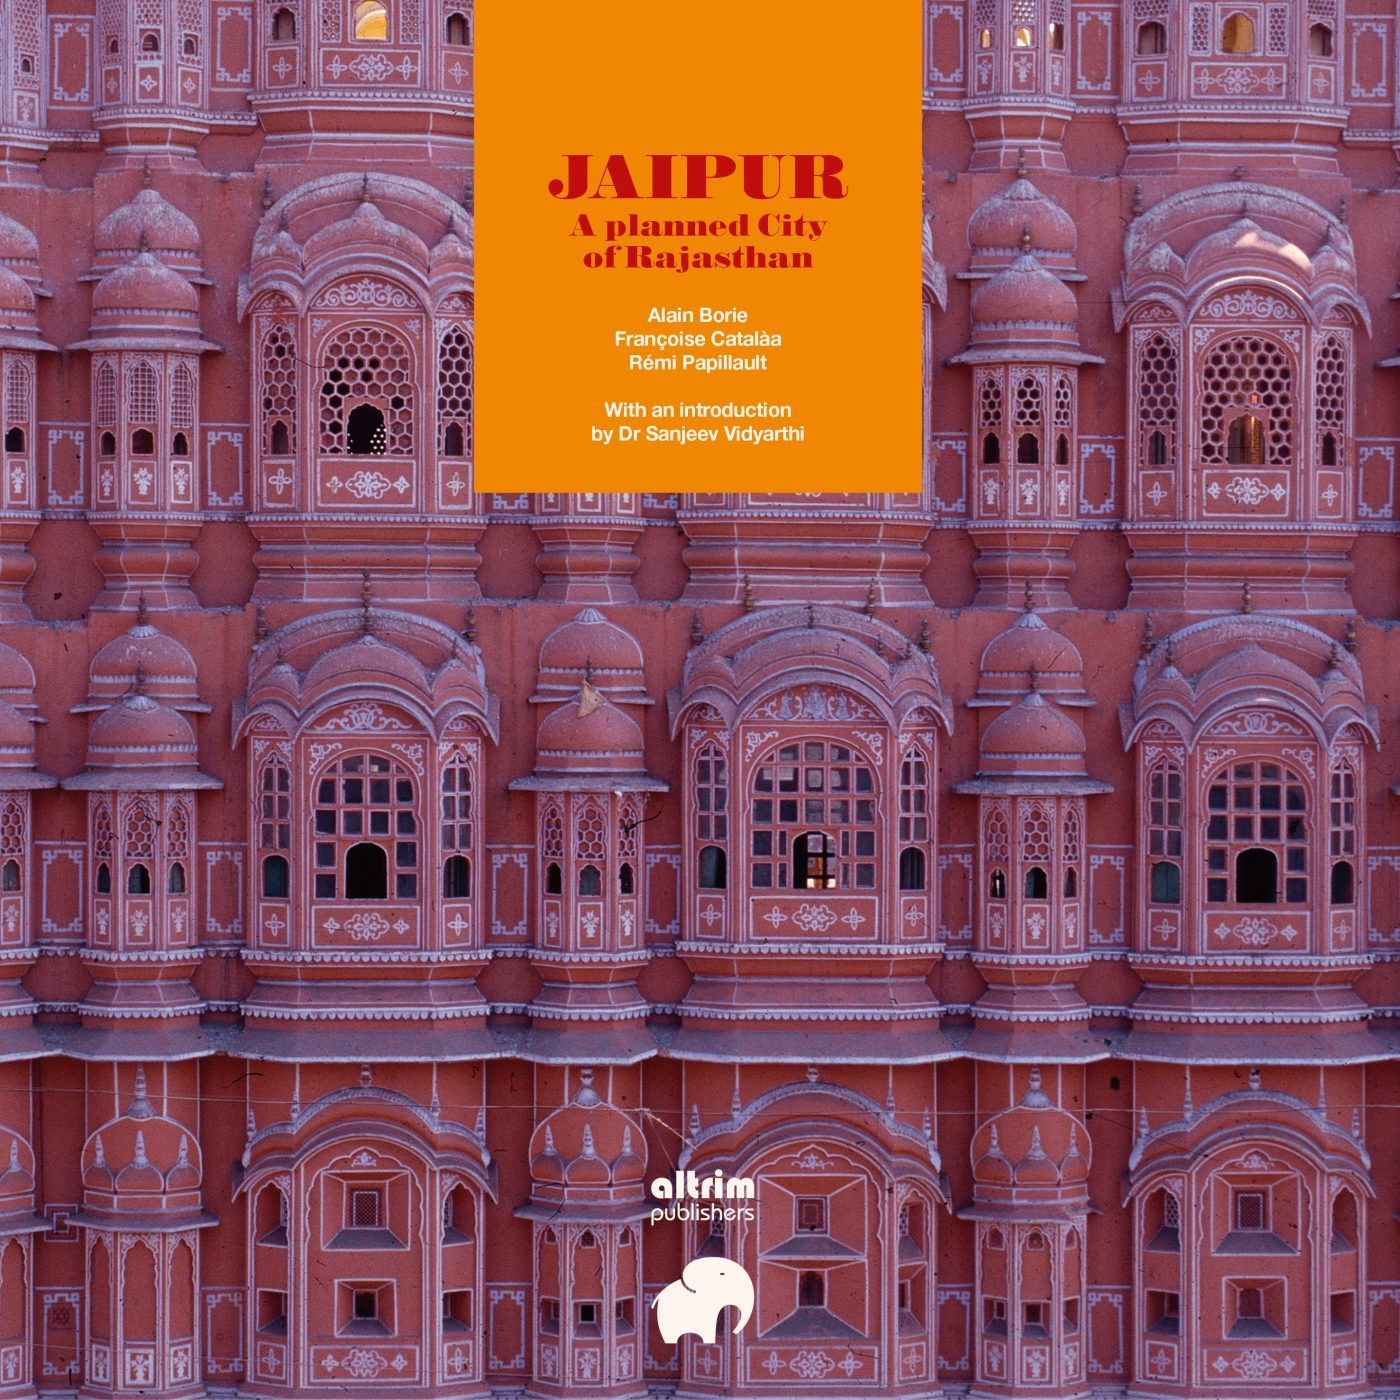 JAIPUR, A PLANNED CITY OF RAJASTHAN book delves the city of Jaipur and its architecture